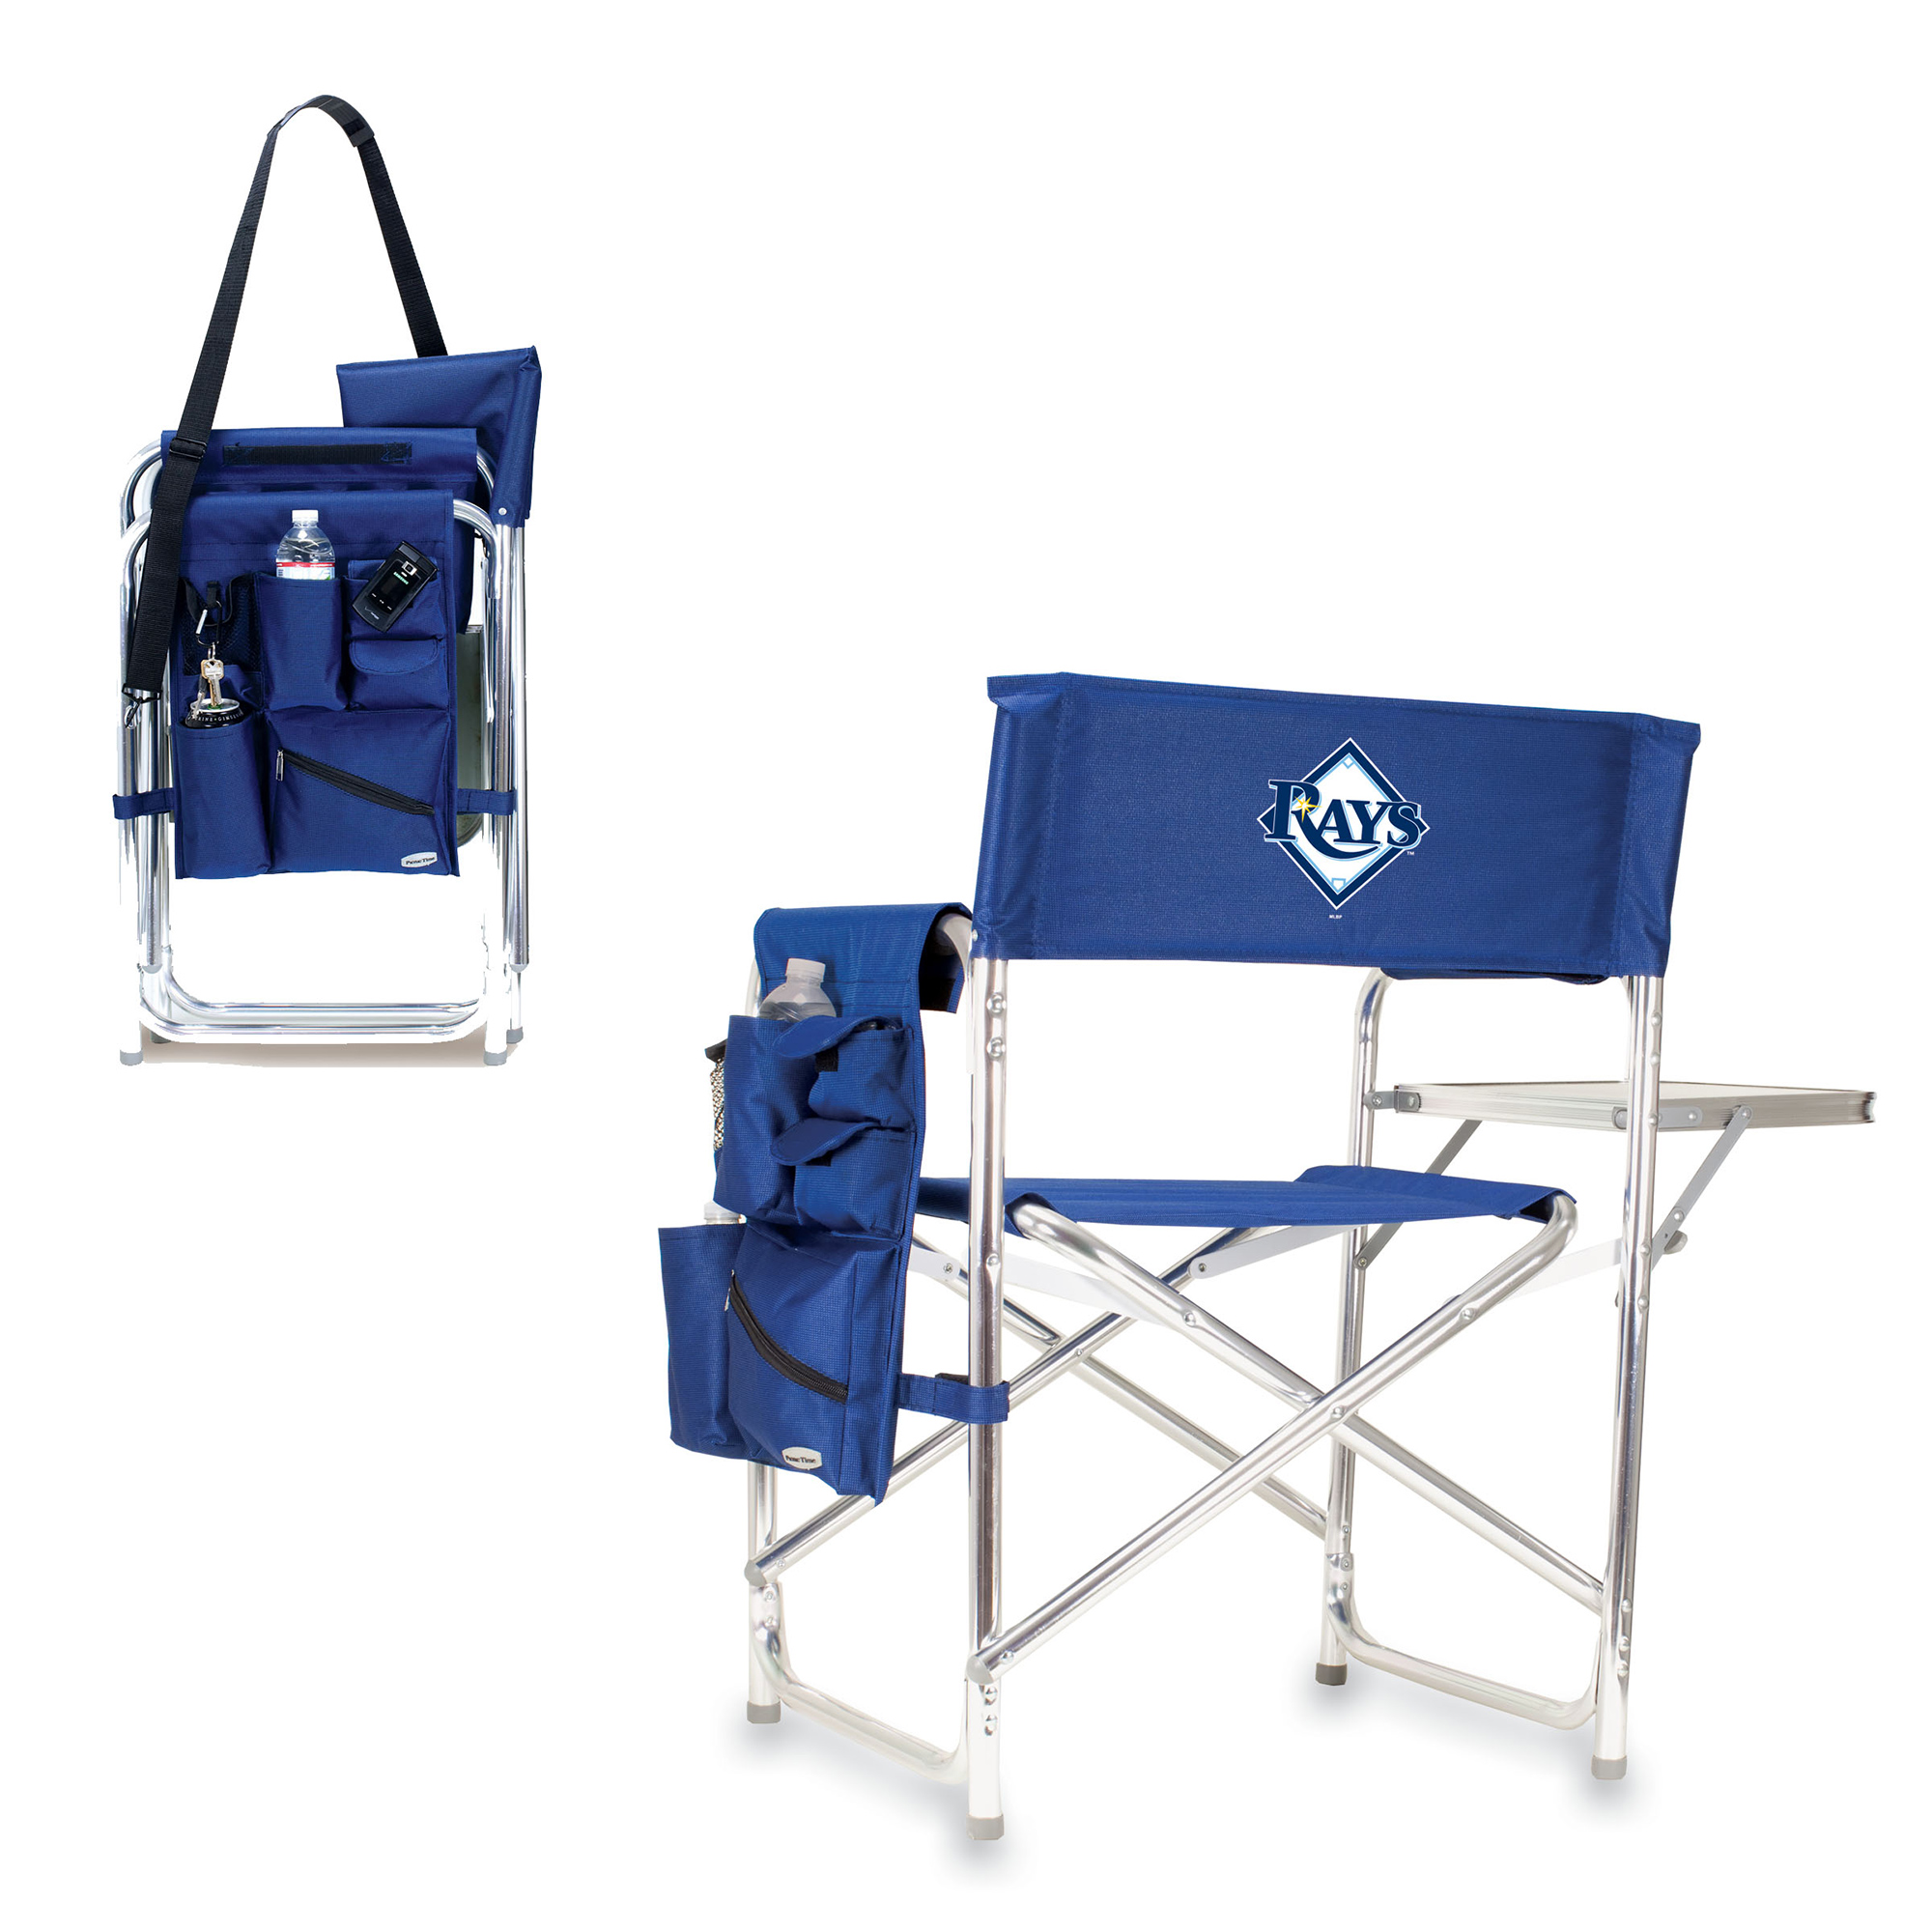 Tampa Bay Rays Sports Chair - Navy - No Size